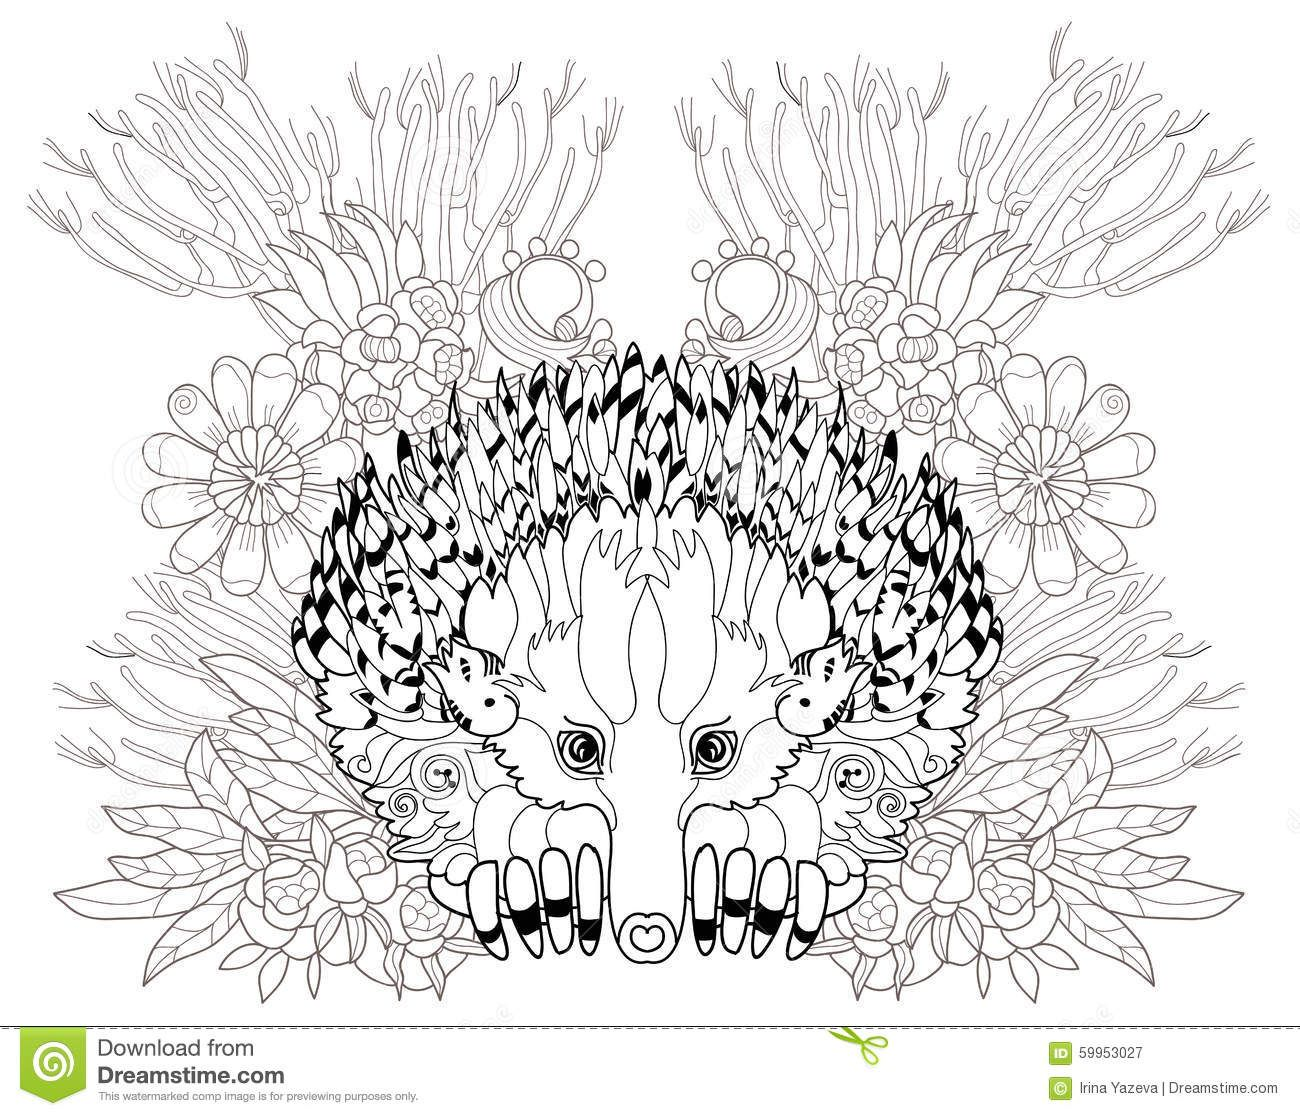 Pin by Barbara on coloring animals divers Pinterest